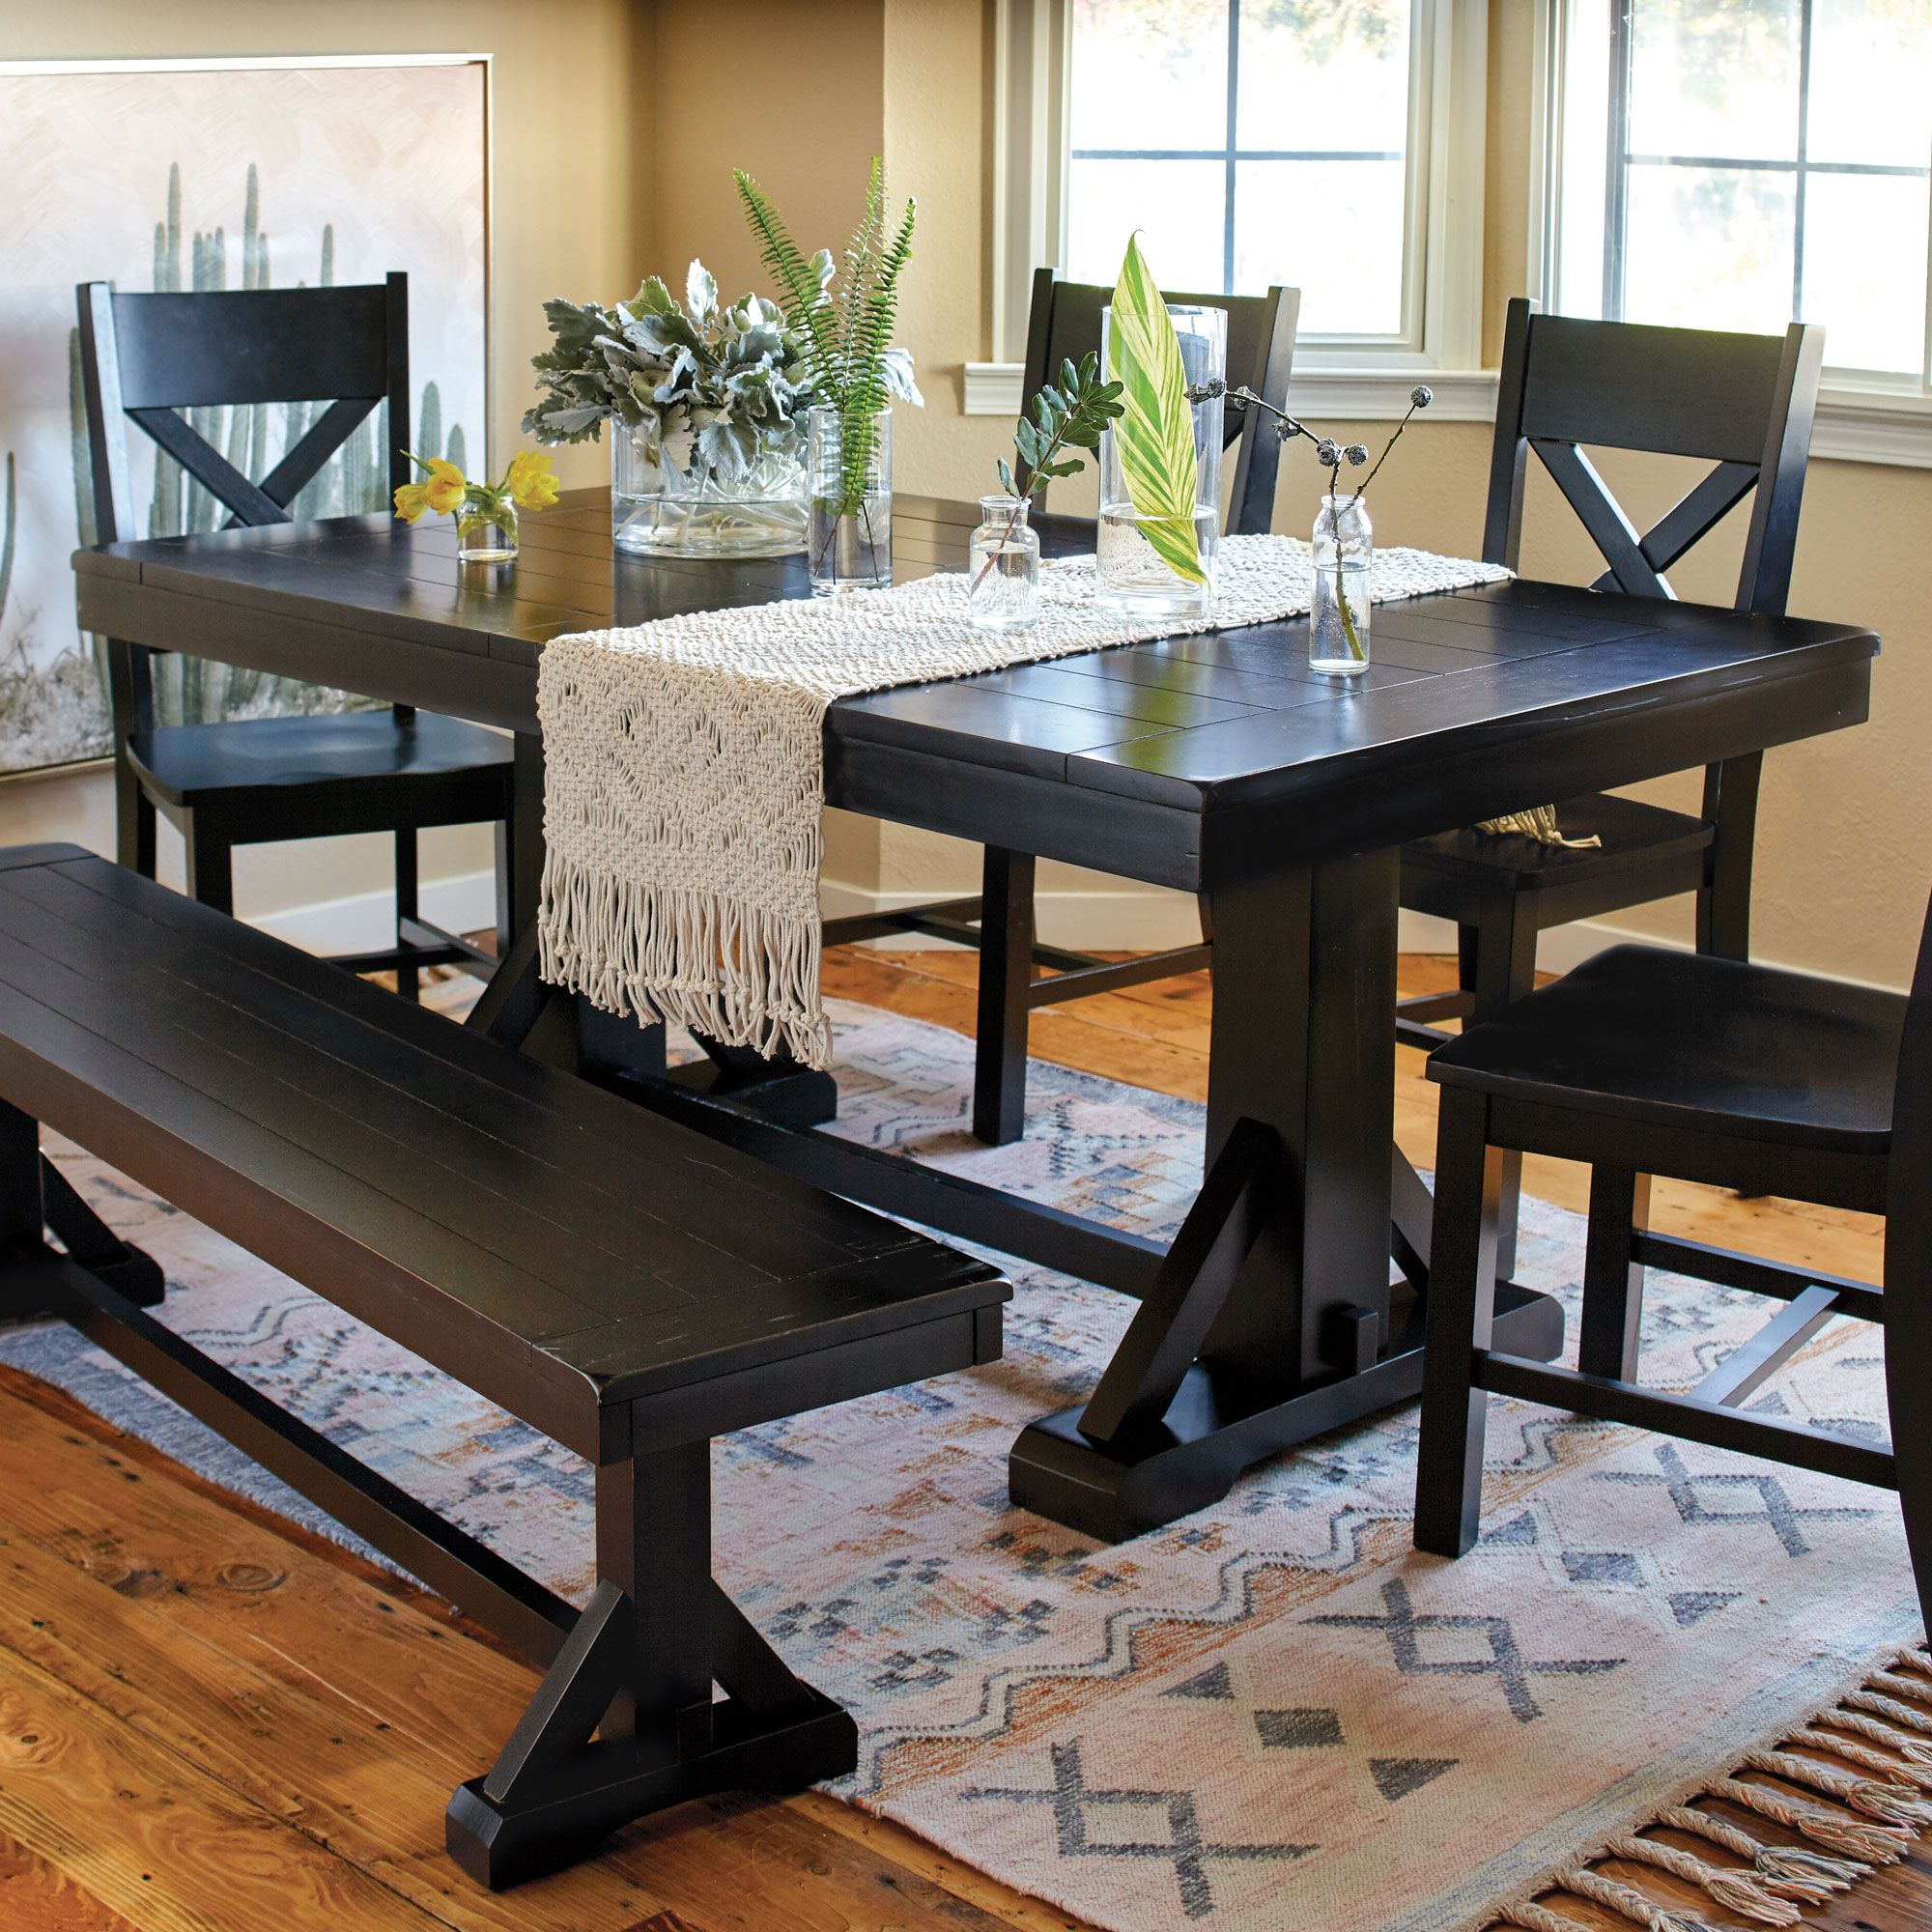 Our classic antique black verona dining collection features distressed finish and looks like it was discovered in a farmhouse in the italian countryside